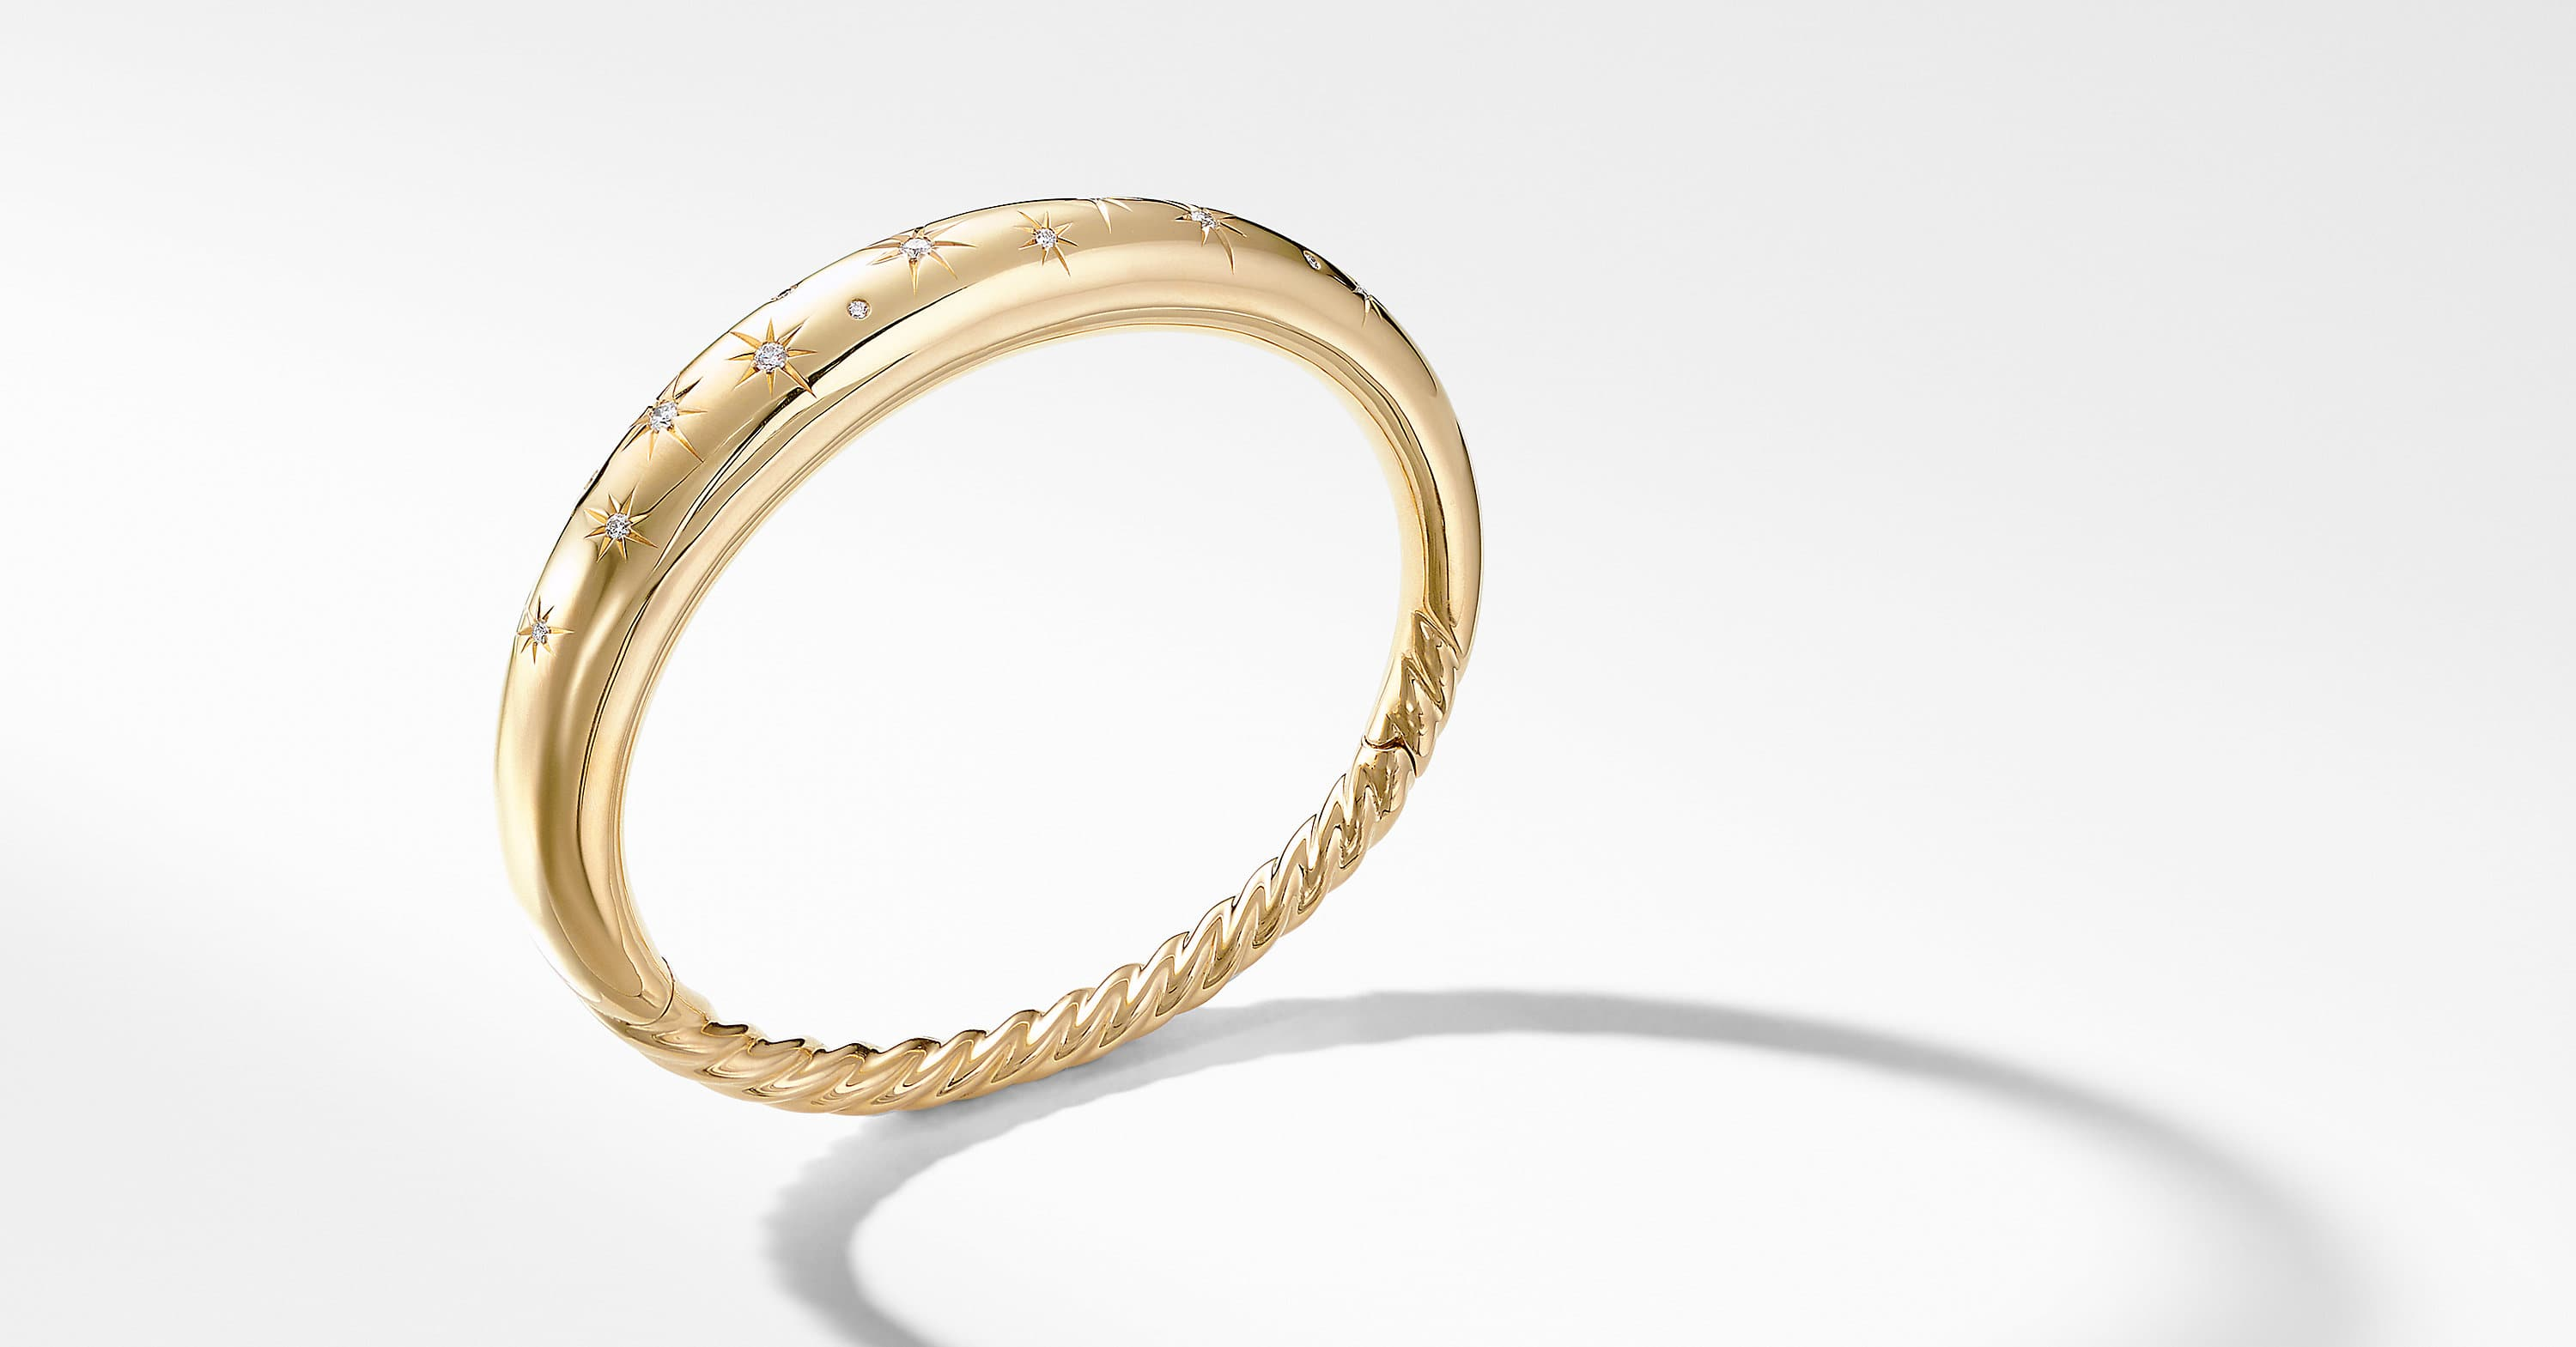 Pure Form Smooth Bracelet with Diamonds in 18K Gold, 9.5mm